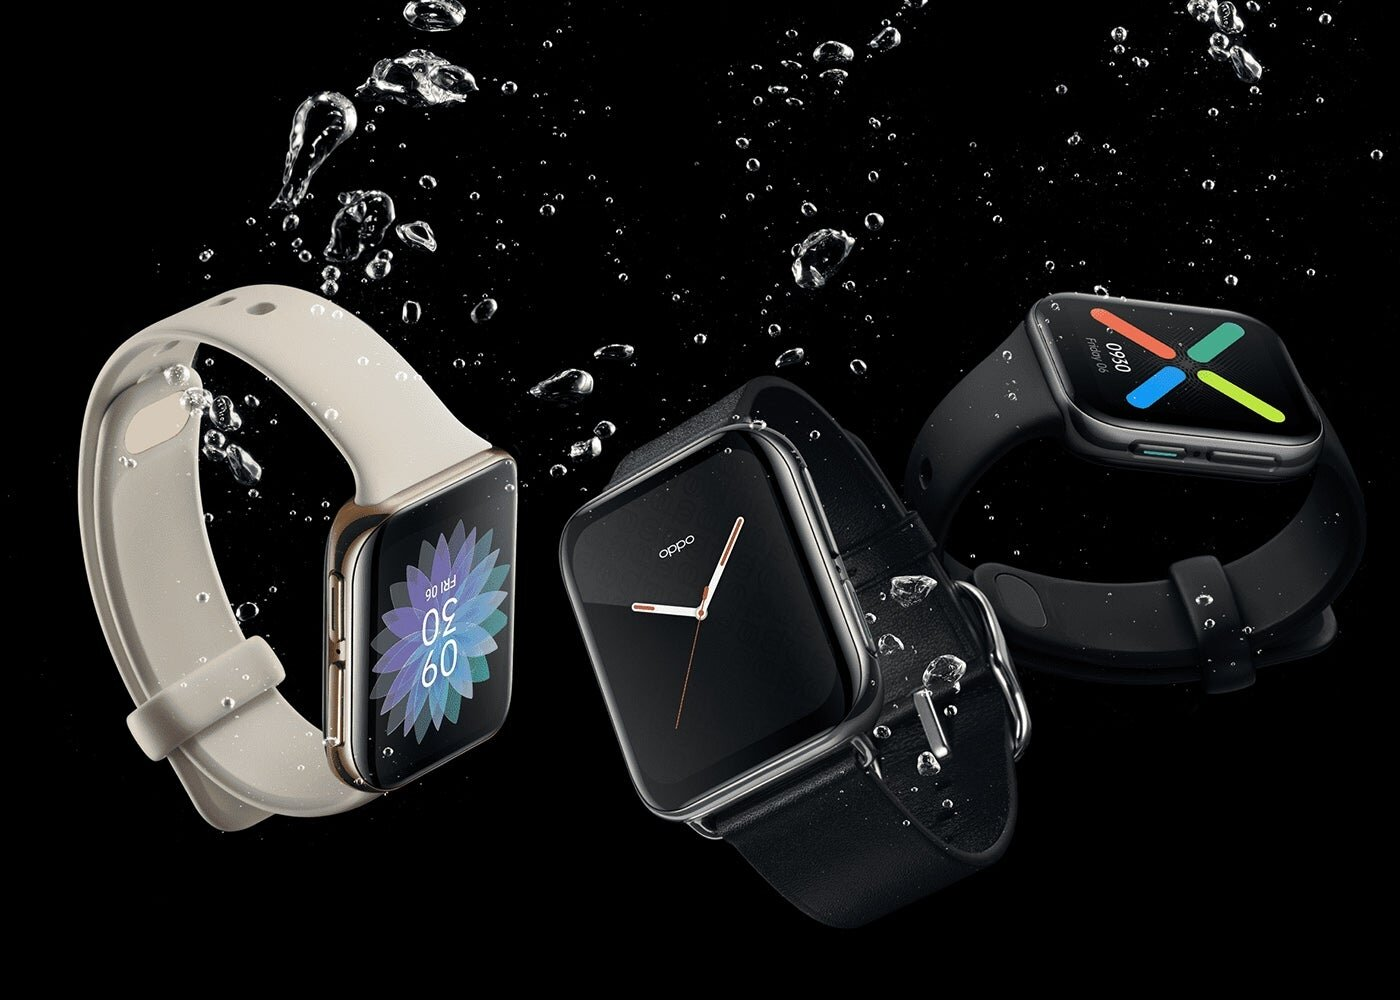 OPPO Watch in three colors